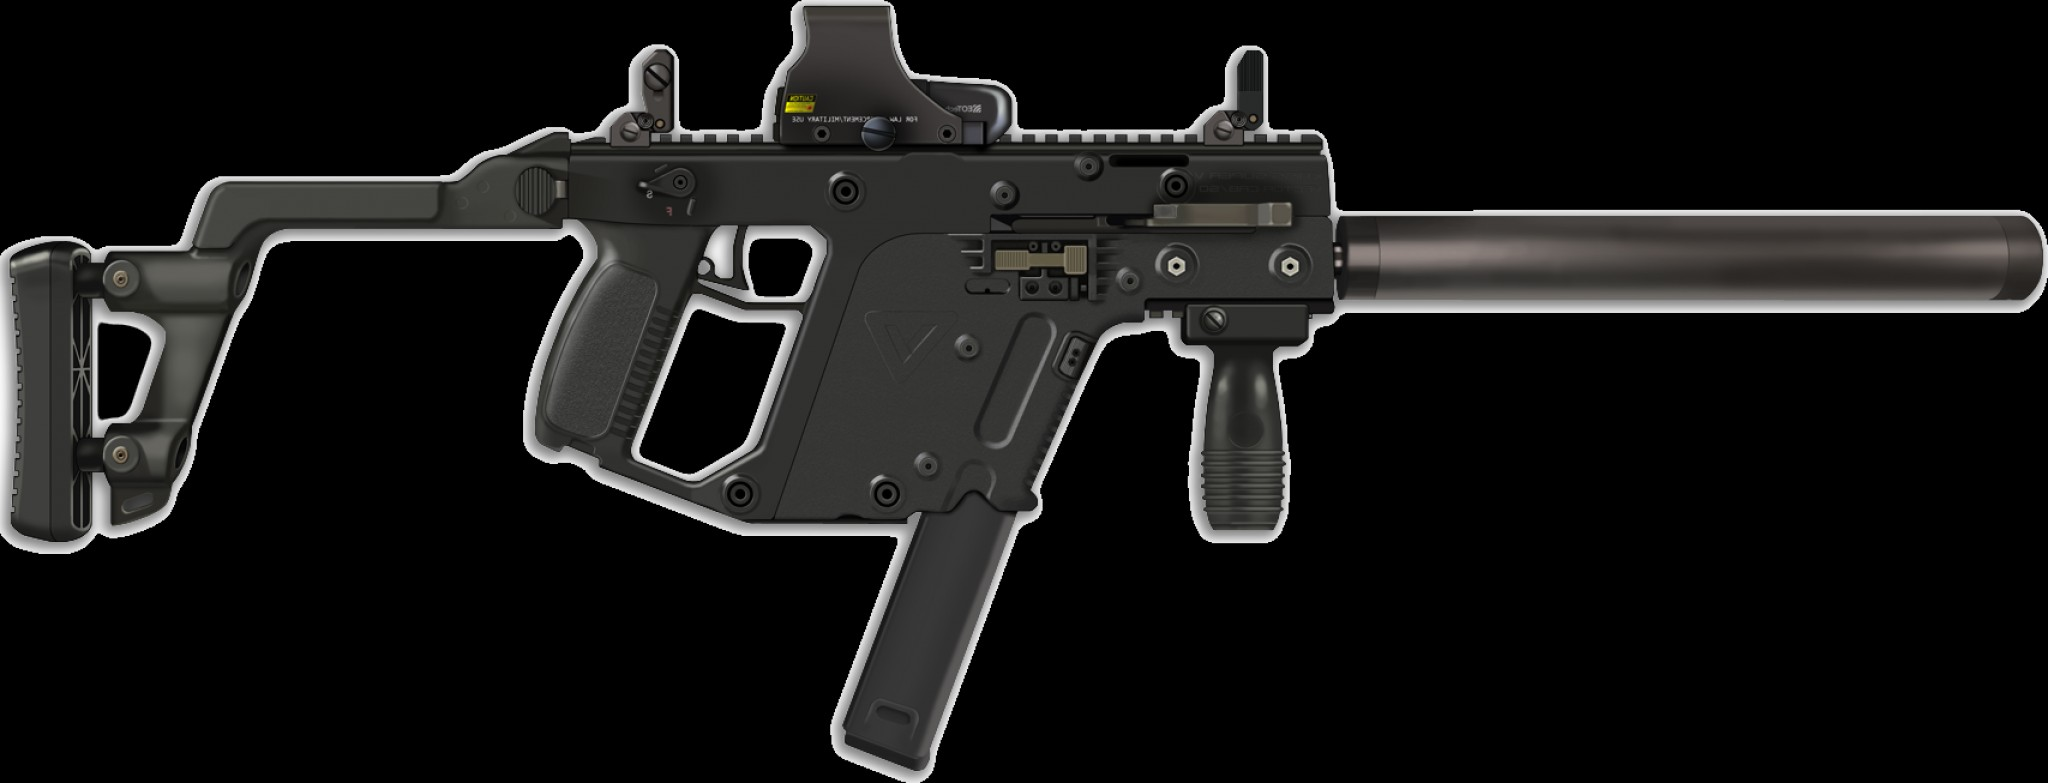 For Kriss Vector Side Picatinny Rails: Hd Vector Crb Vector File Free